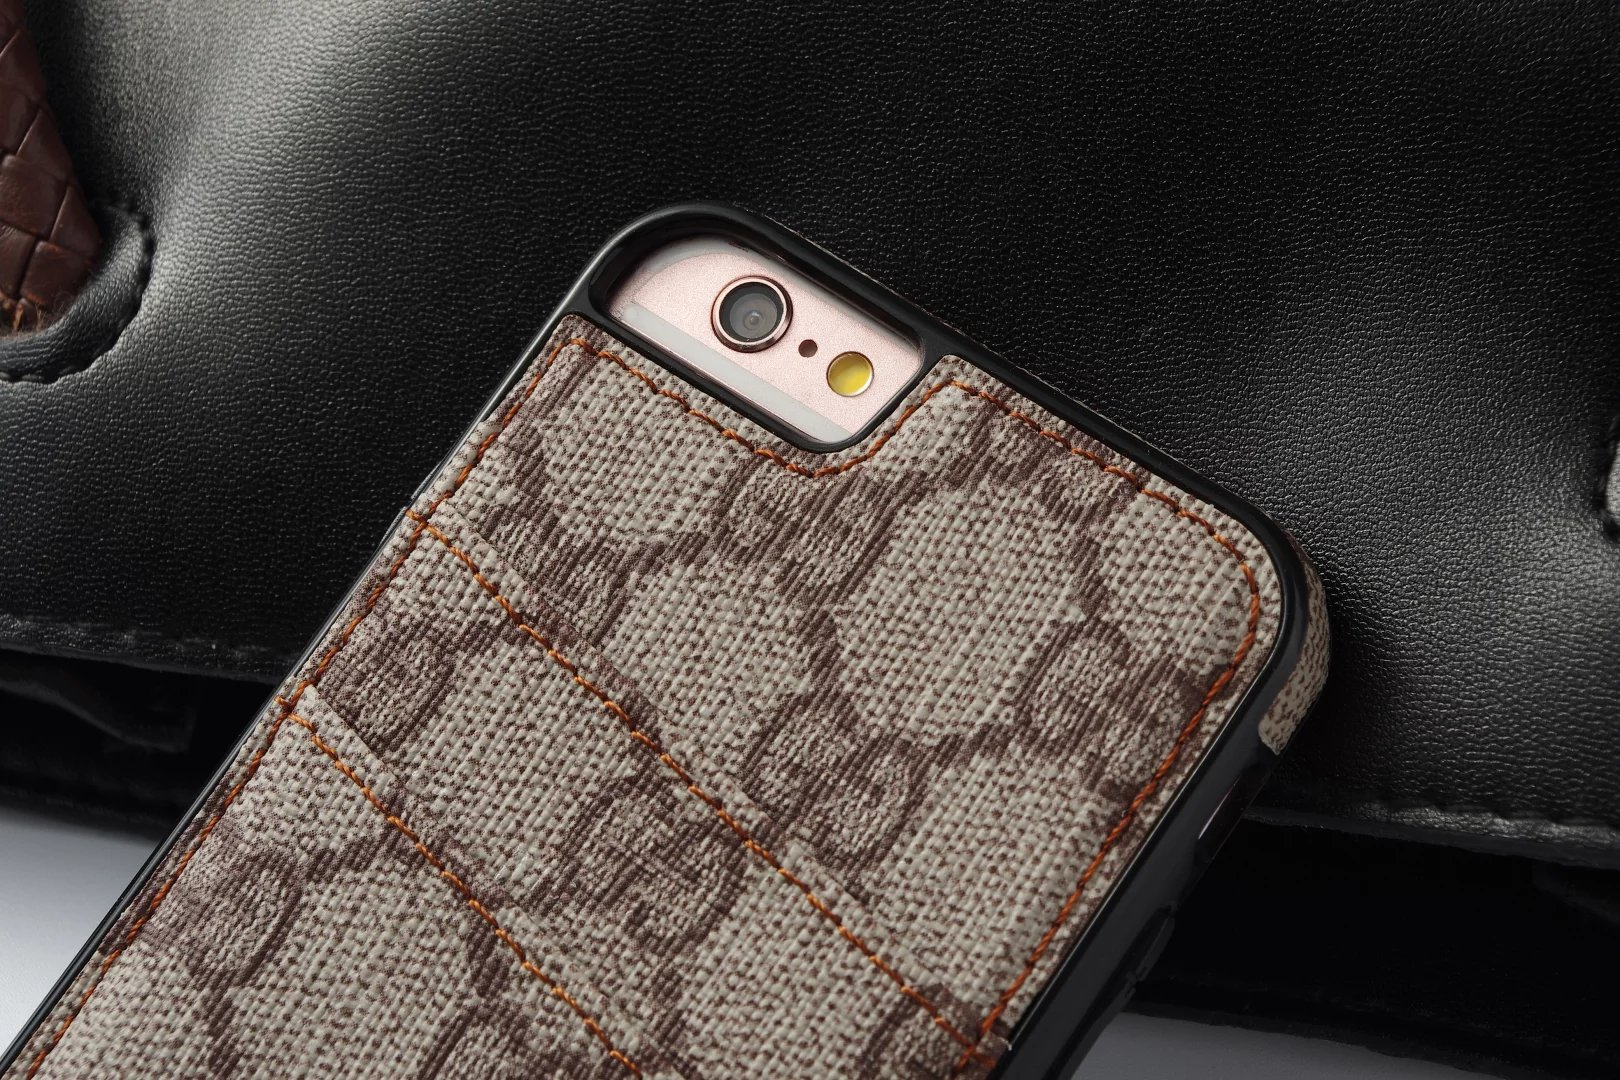 fashion iphone 6s Plus cases iphone 6s Plus official case fashion iphone6s plus case 6s cases iphone plastic carrying case iphone 6s case cover new phone covers the best iphone 6 cases phone case skins